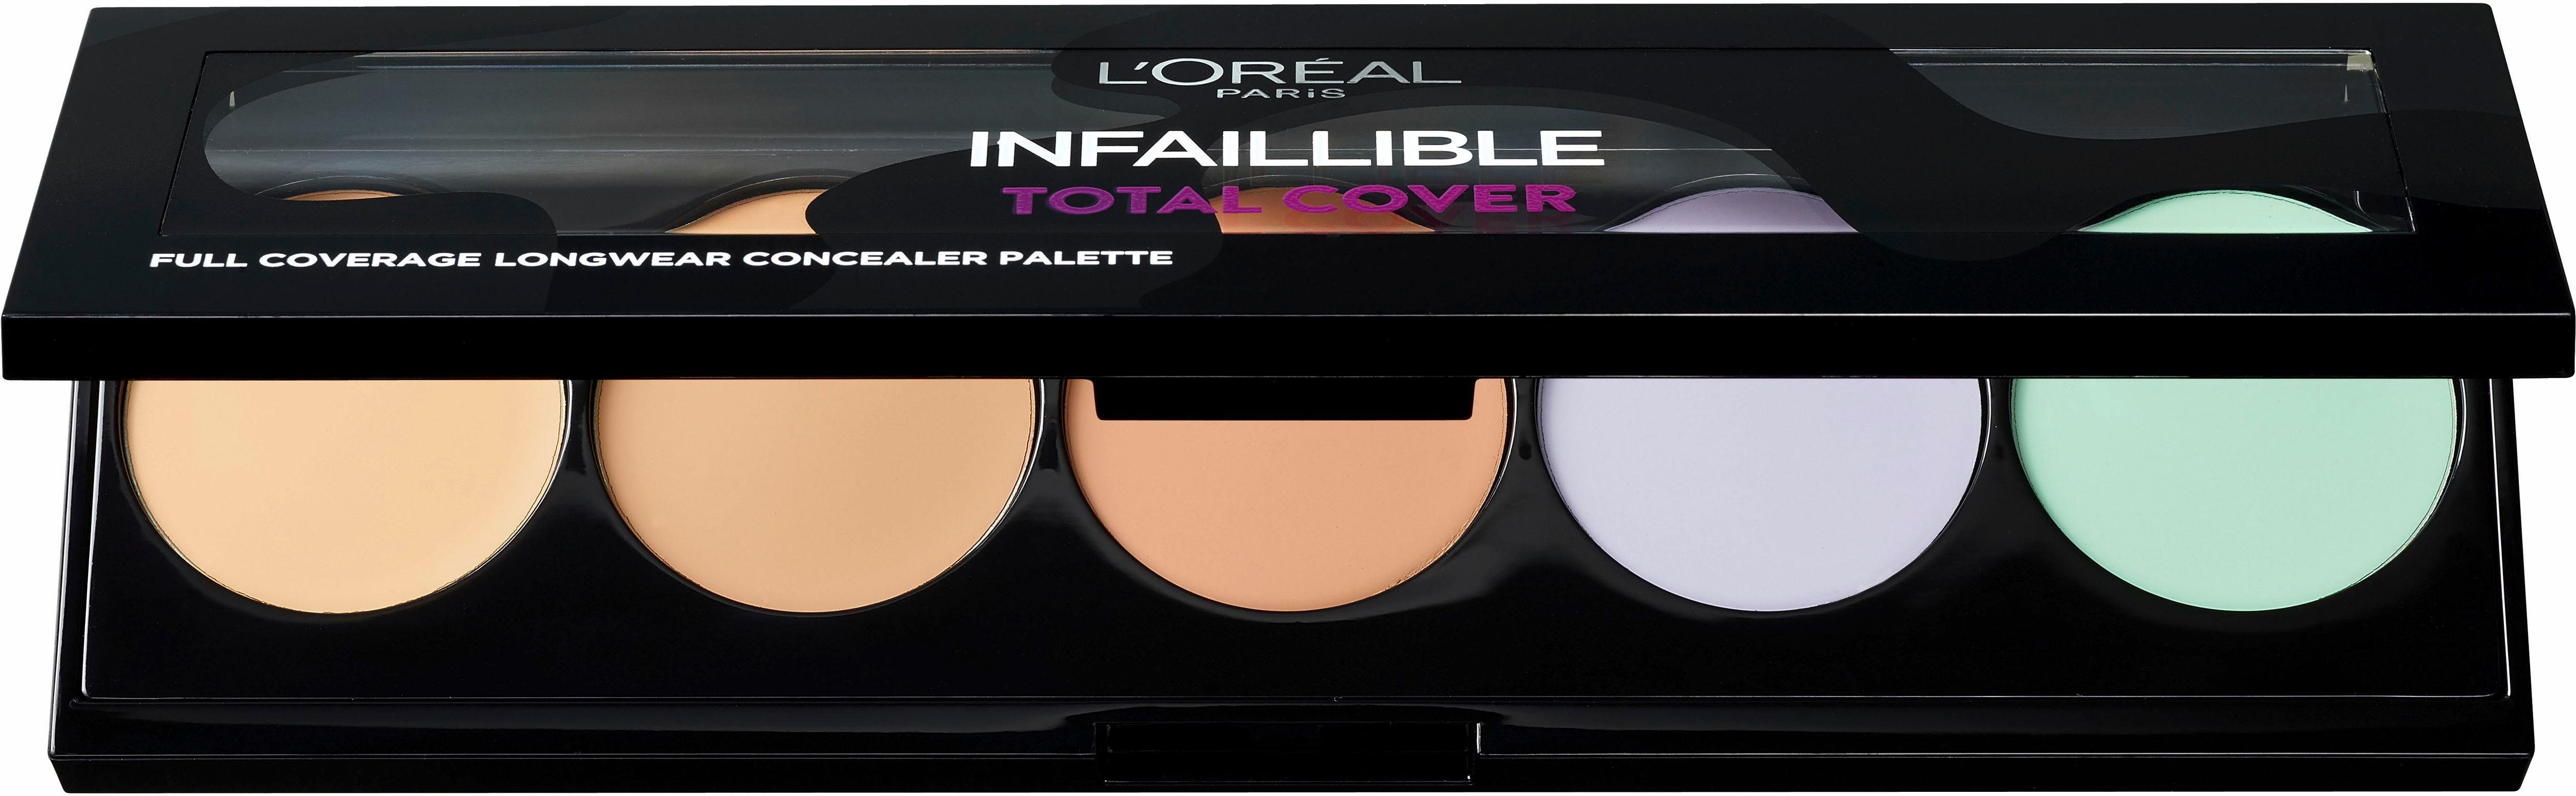 L'Oréal Paris, »Infaillible Total Cover Palette«, Concealer